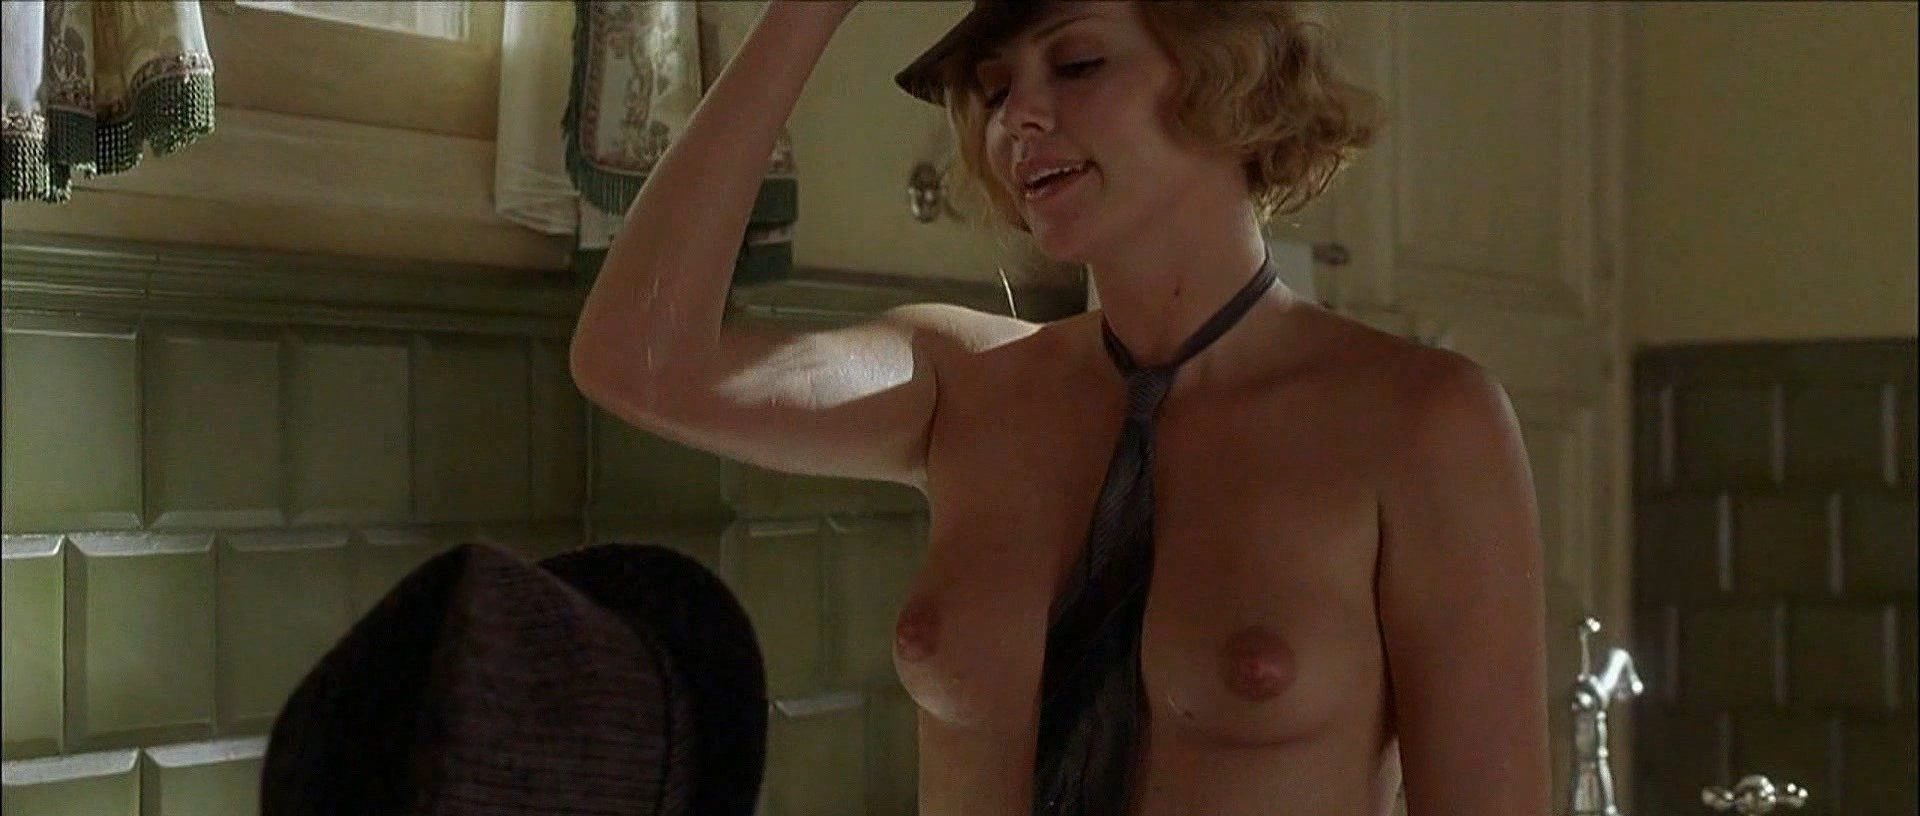 Consider, Charlize theron nude picture necessary words